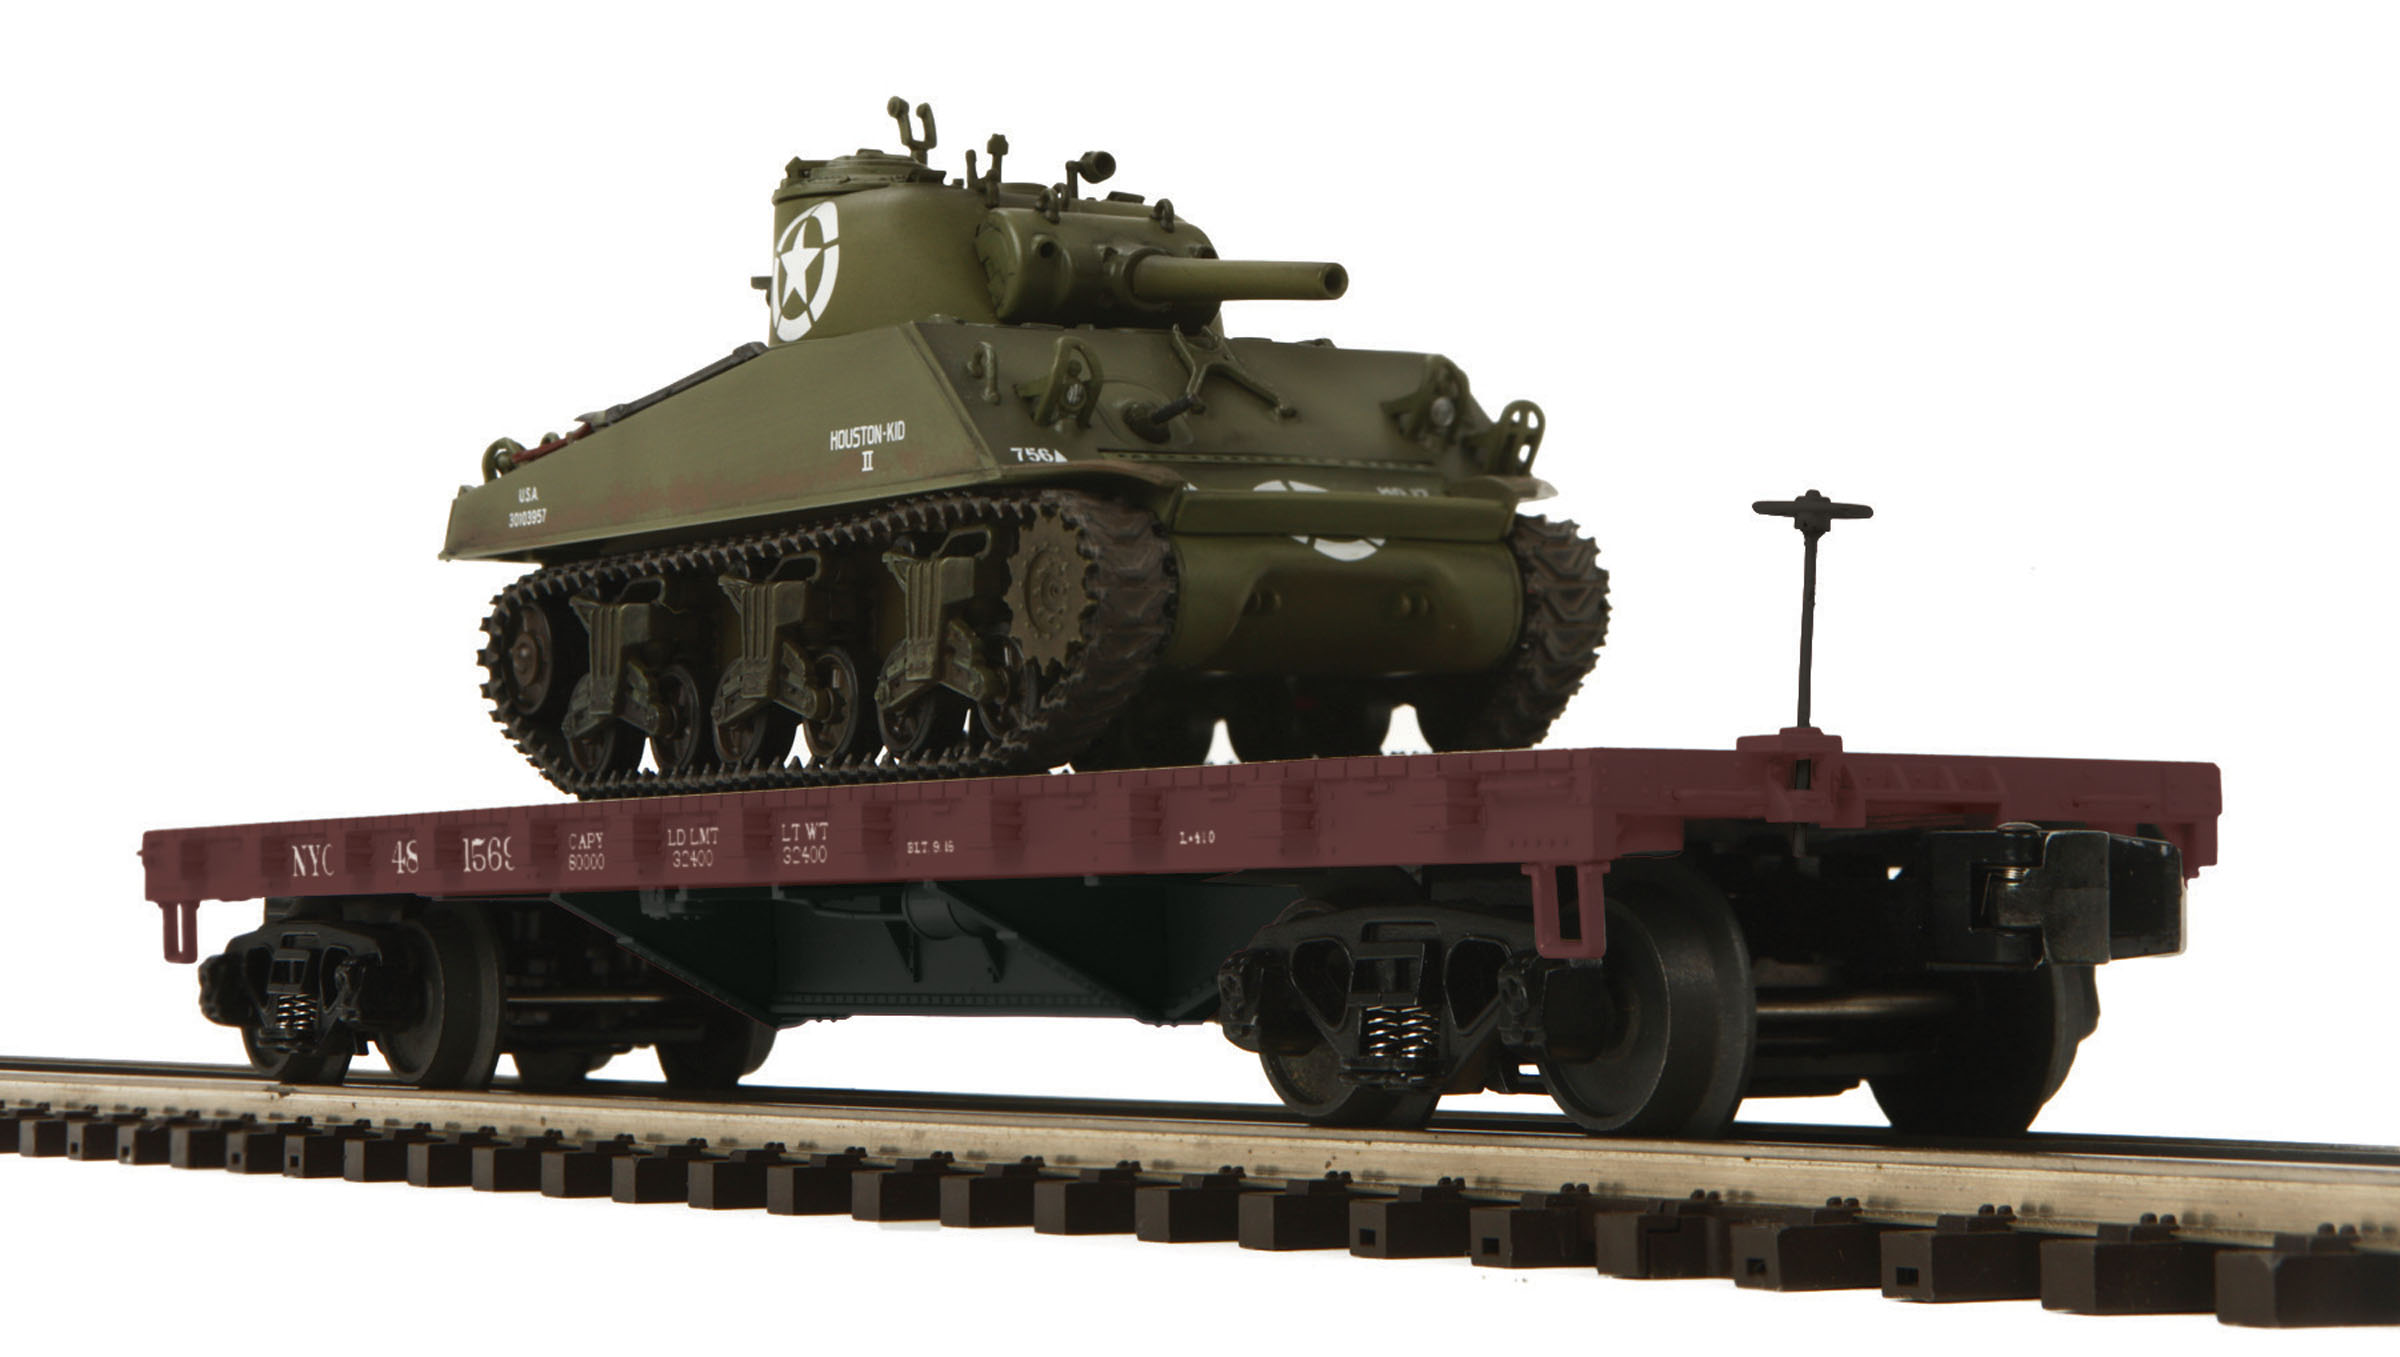 O Scale Freight Car Guide Standard And Piggy Back Flat Cars Cutting Down Lionel 022 Switches Gauge Railroading On Line Forum The Combination Of A Plastic Body With Steel Weights Make Them About Half Ounce Heavier Than Diecast When Both Are Without Load